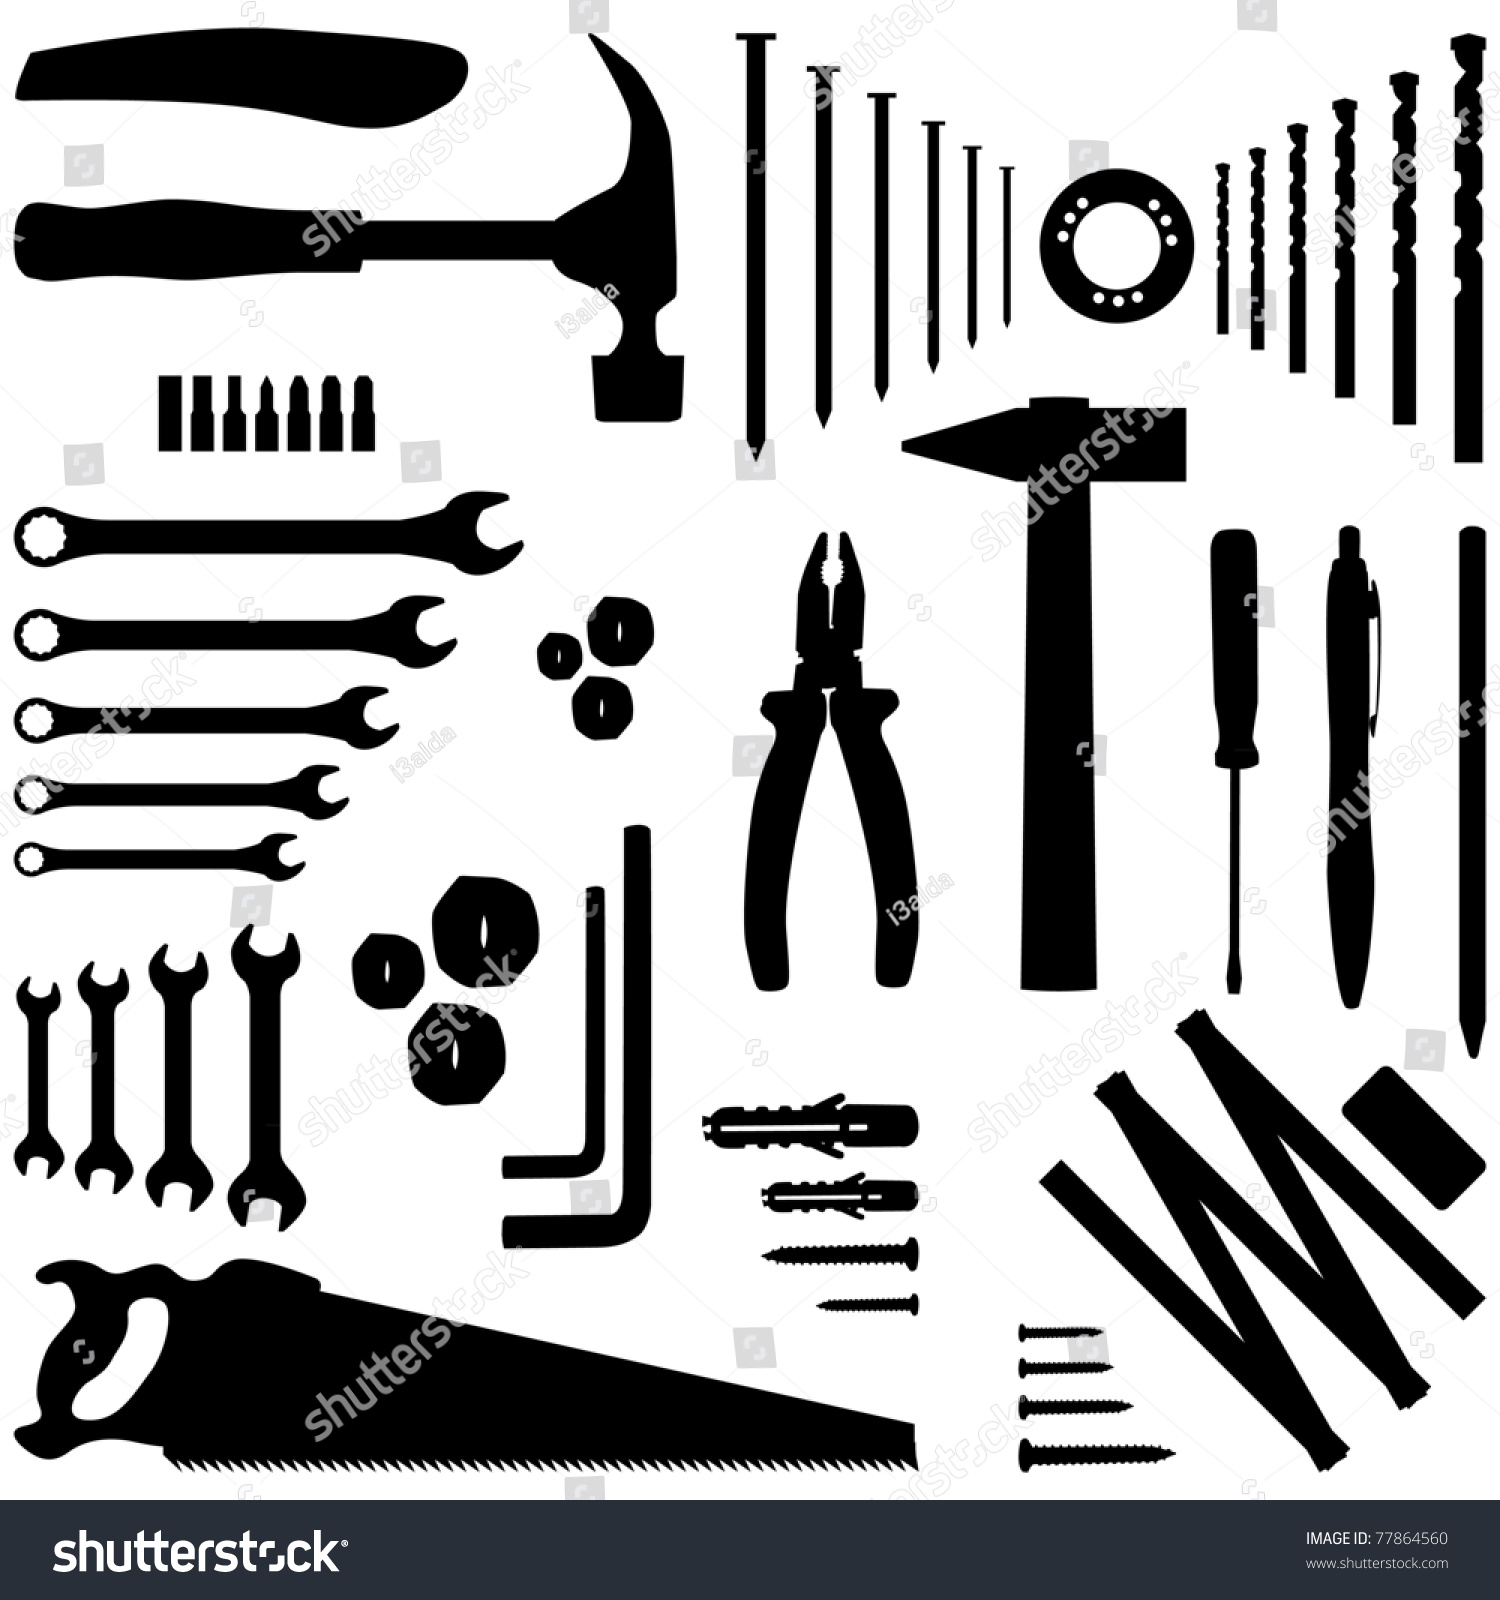 Dyi Tool - Silhouette Illustration - 77864560 : Shutterstock